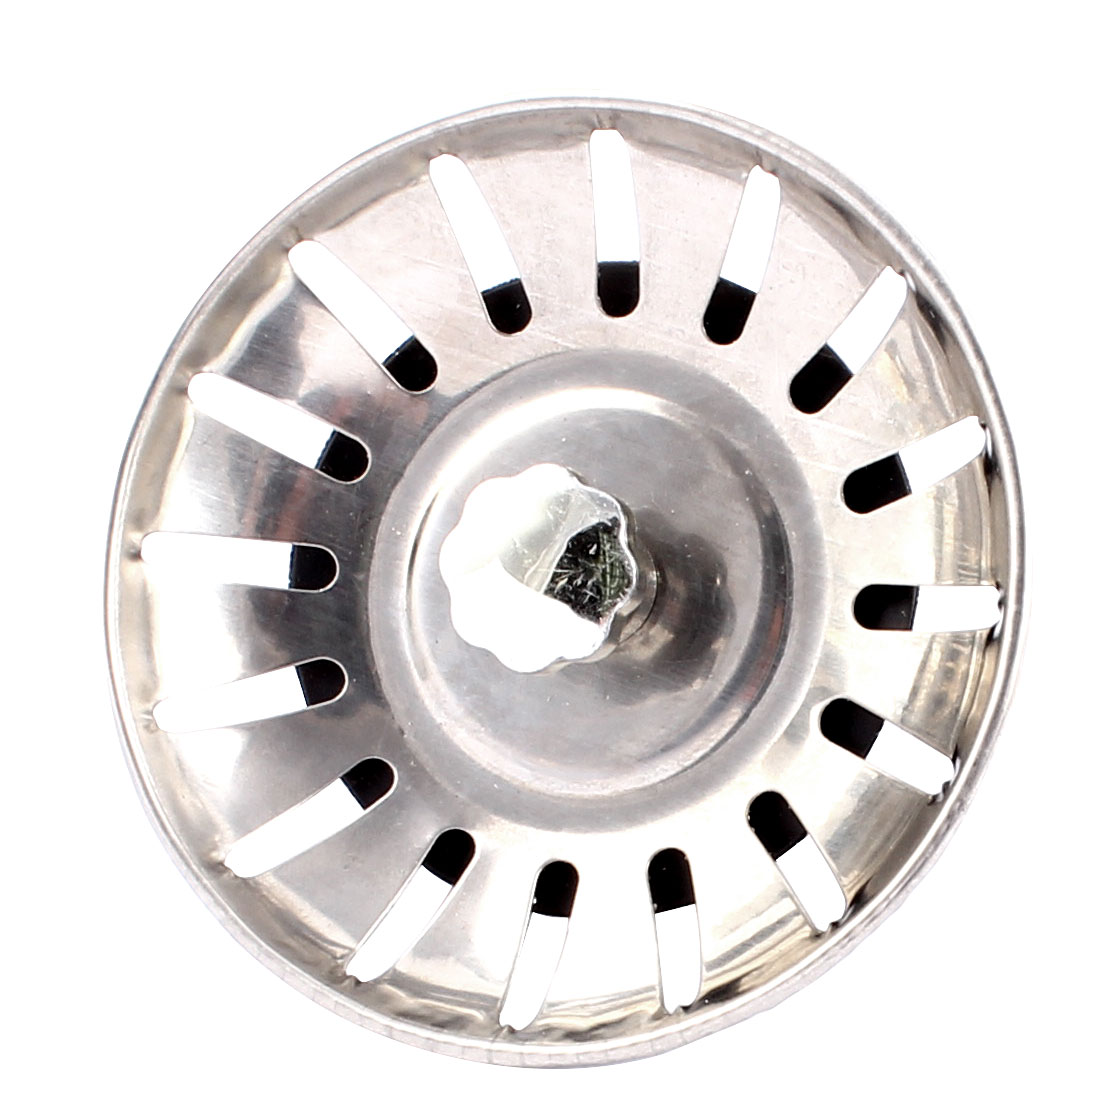 Sink Strainer Drain 16 Holes Basket Garbage Stopper Silver Tone